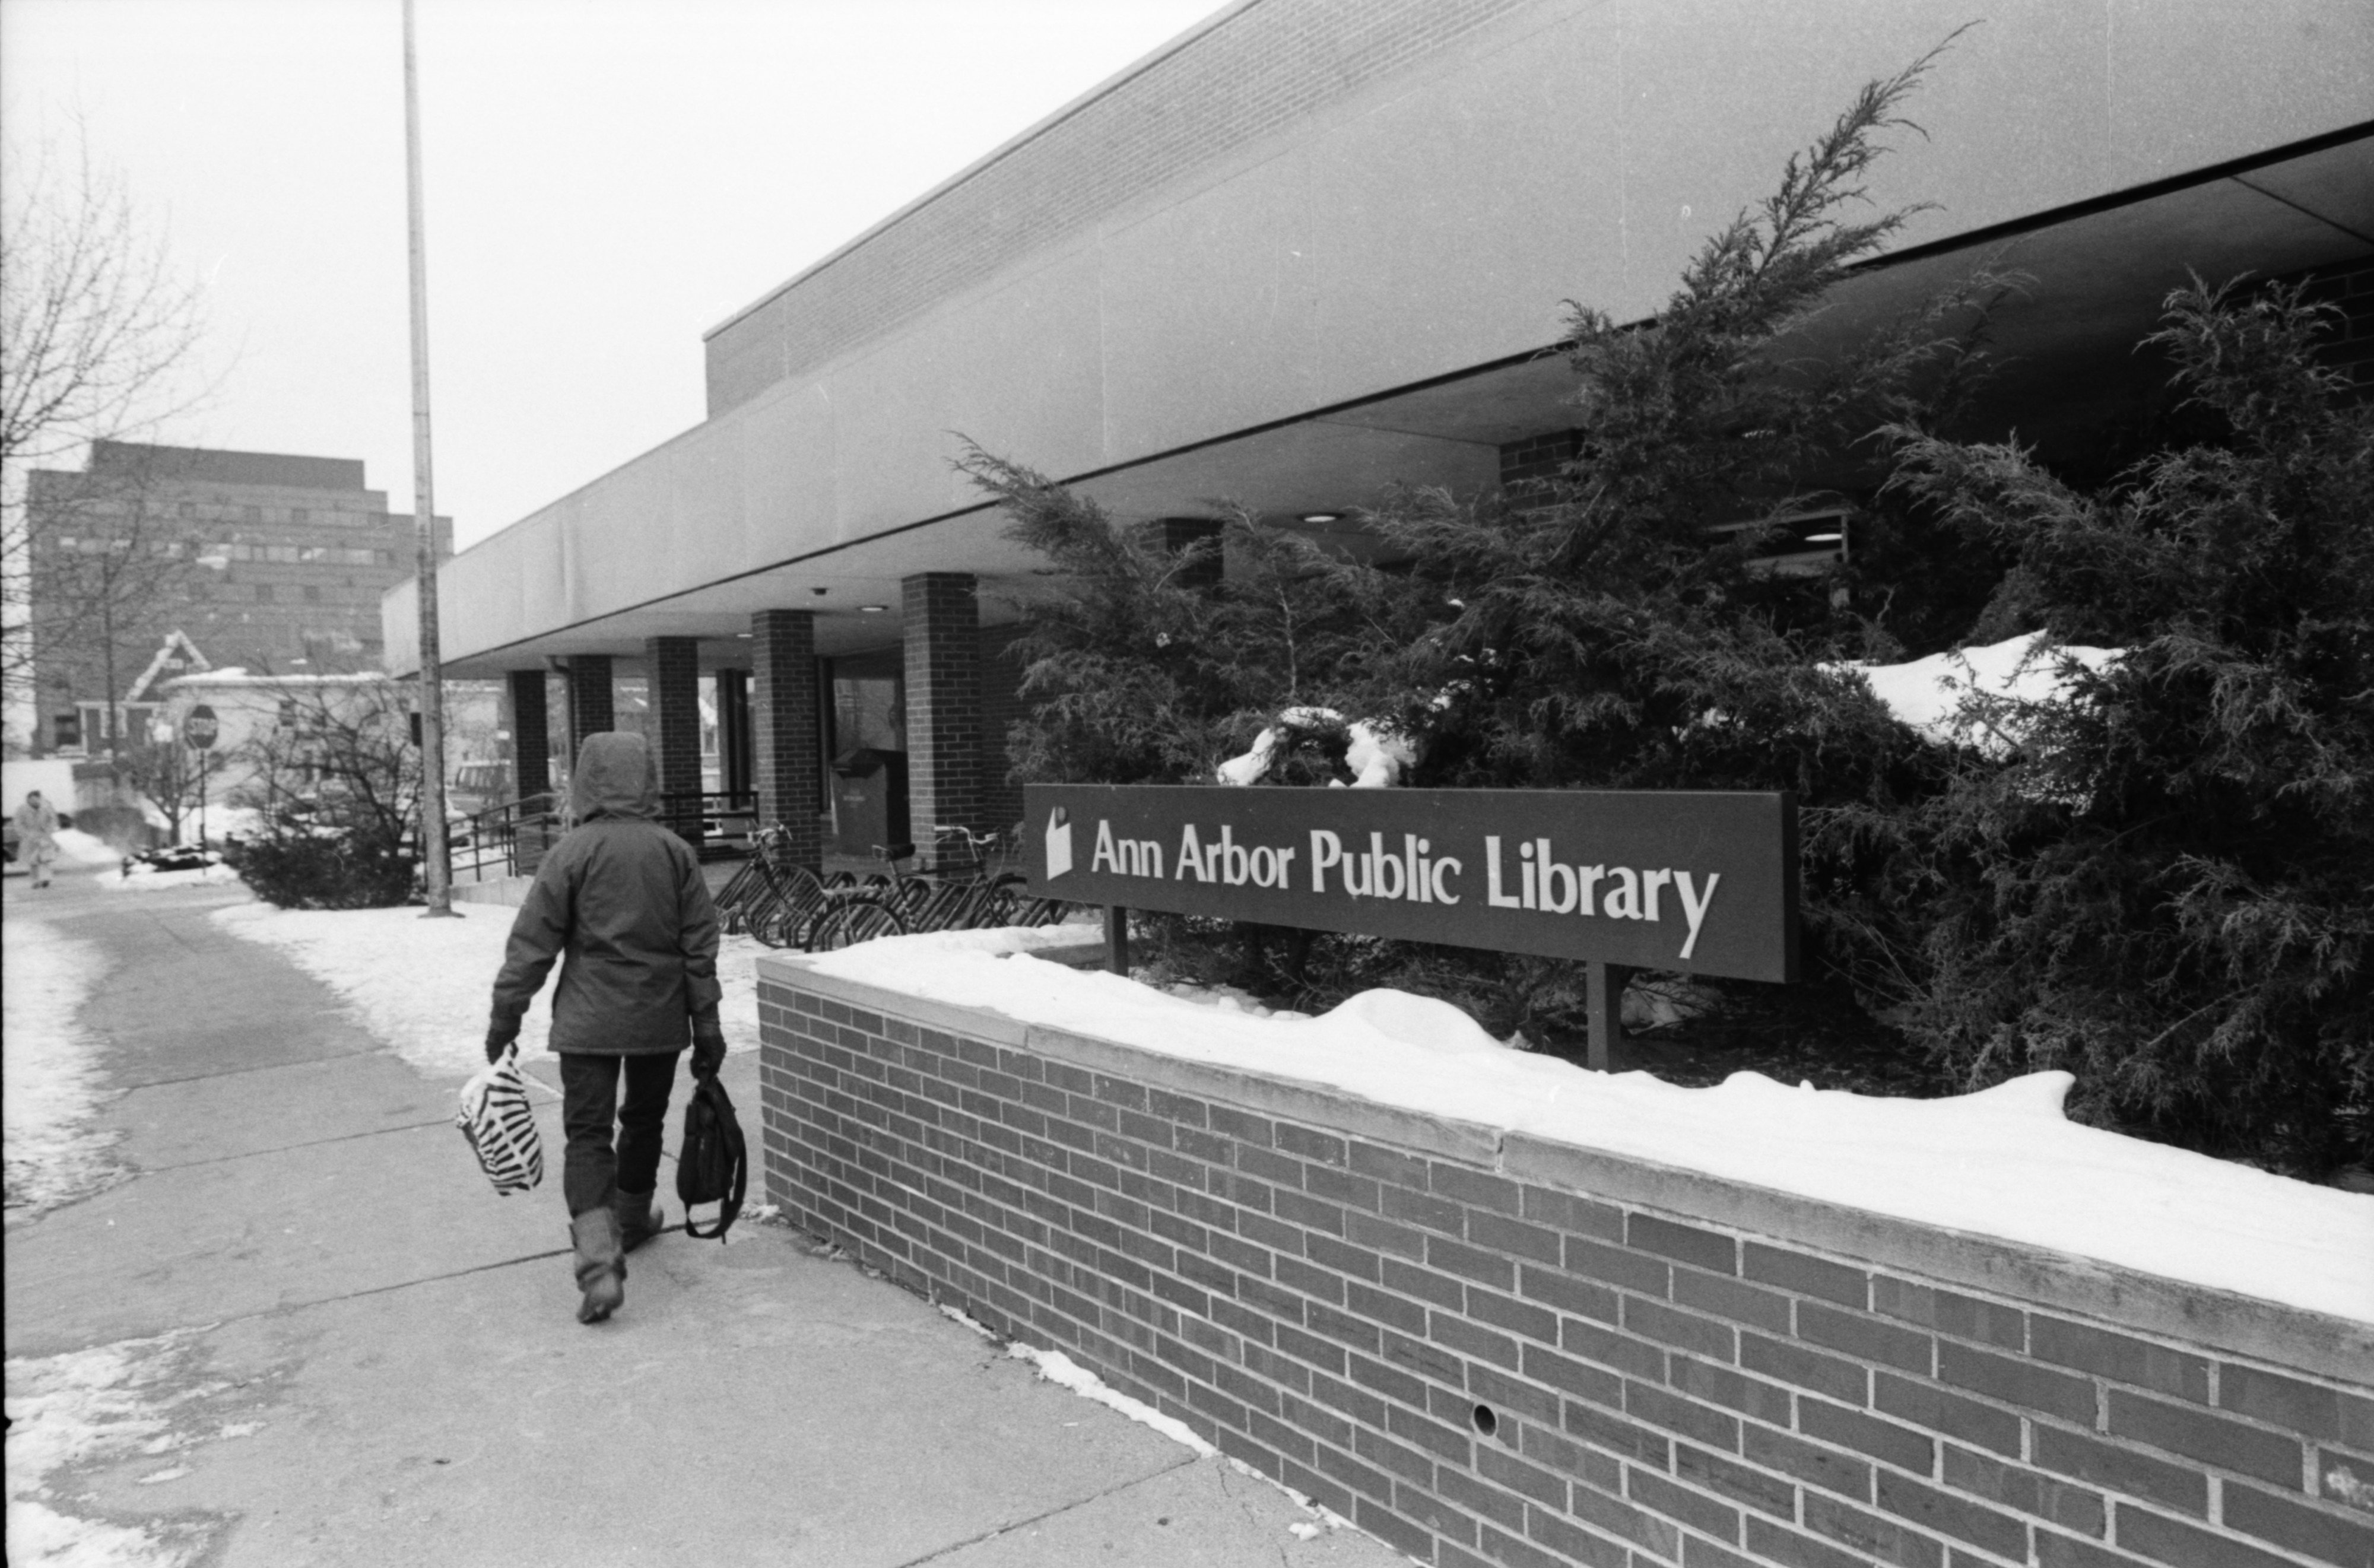 Ann Arbor Public Library, January 1988 image